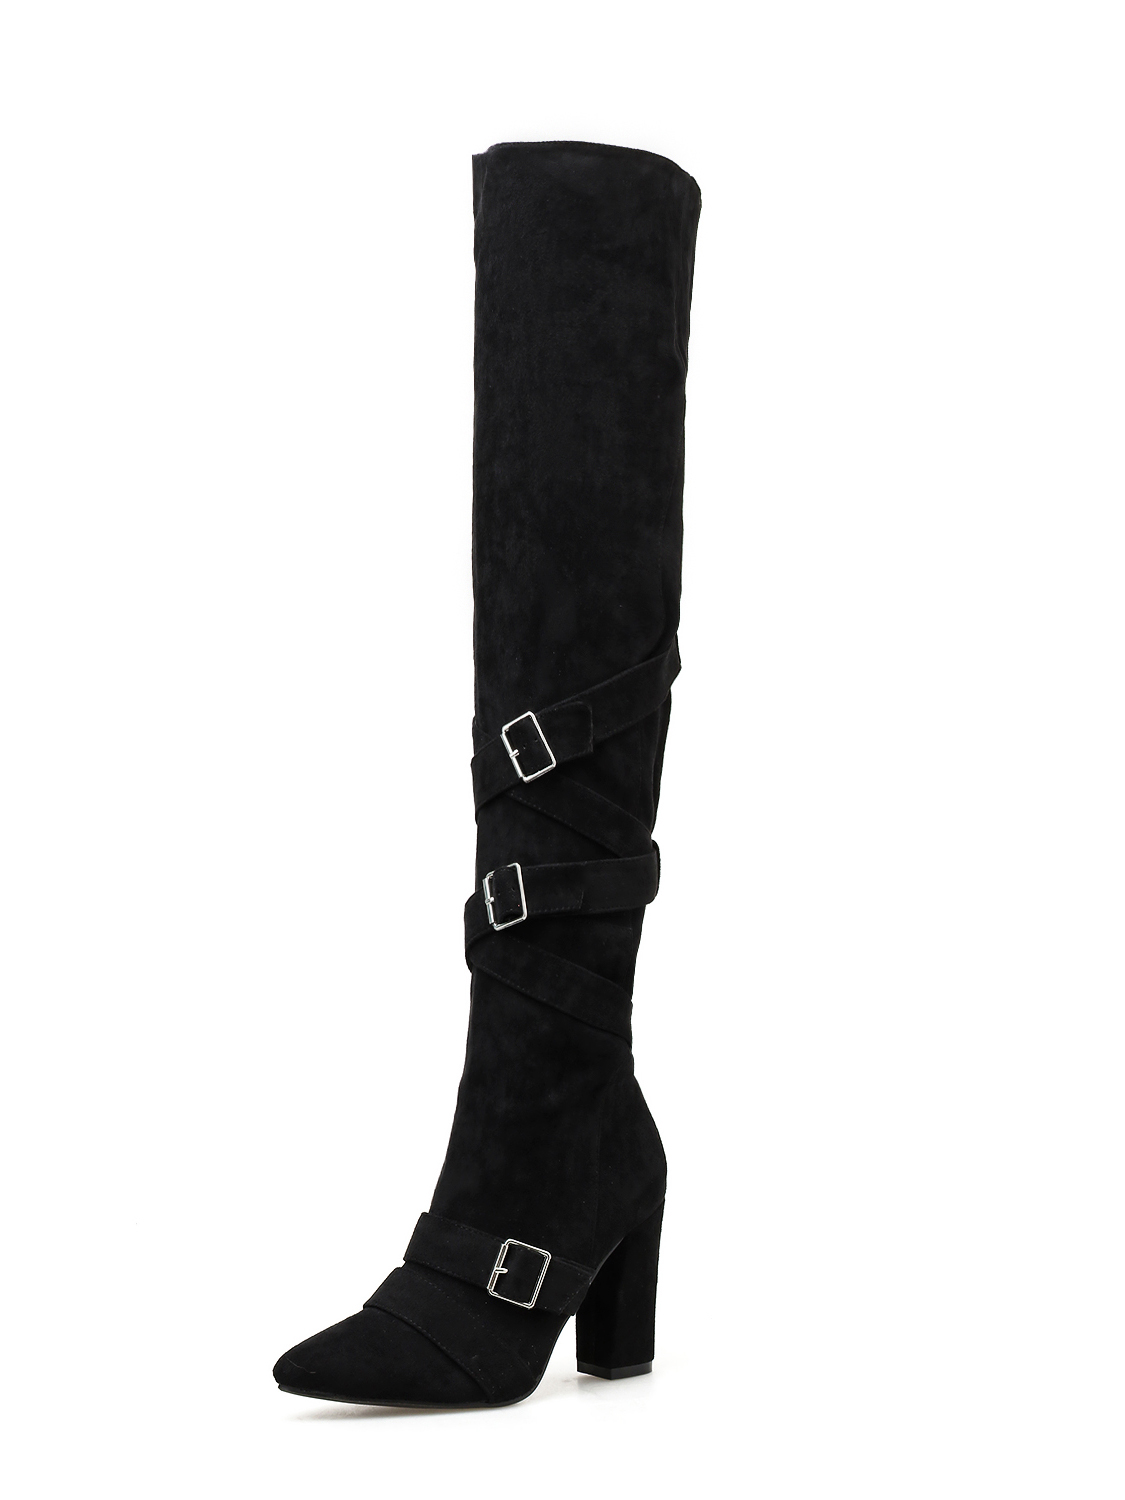 Cross Buckle Strap Solid Thigh High Boots